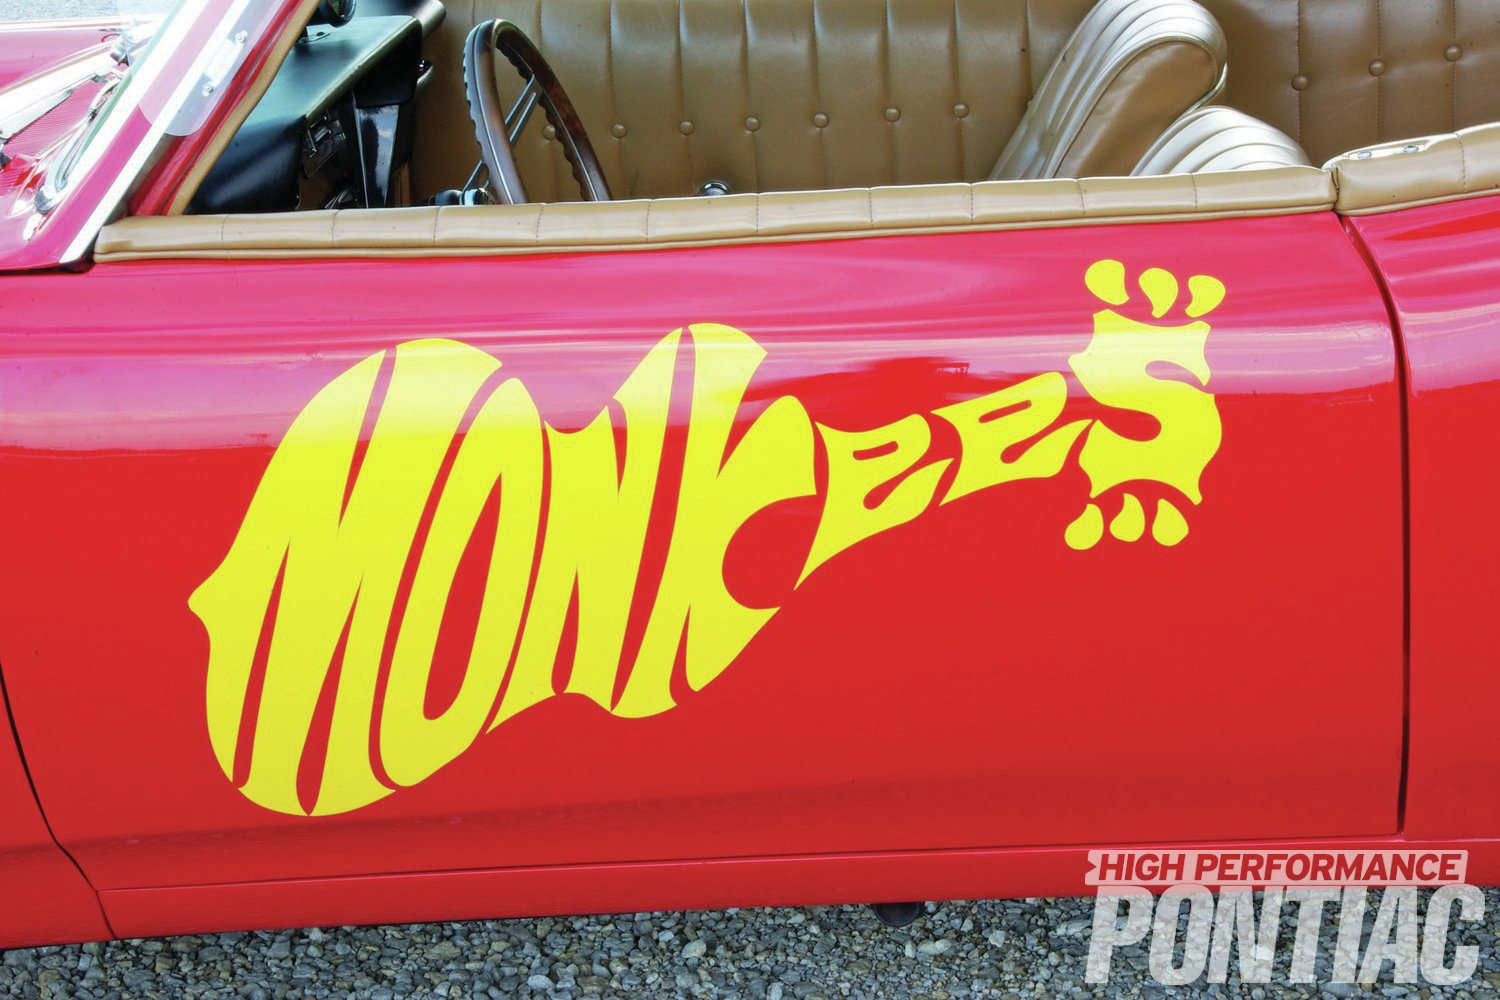 The Monkees' logo was reproduced when the car was repainted in the early '90s.